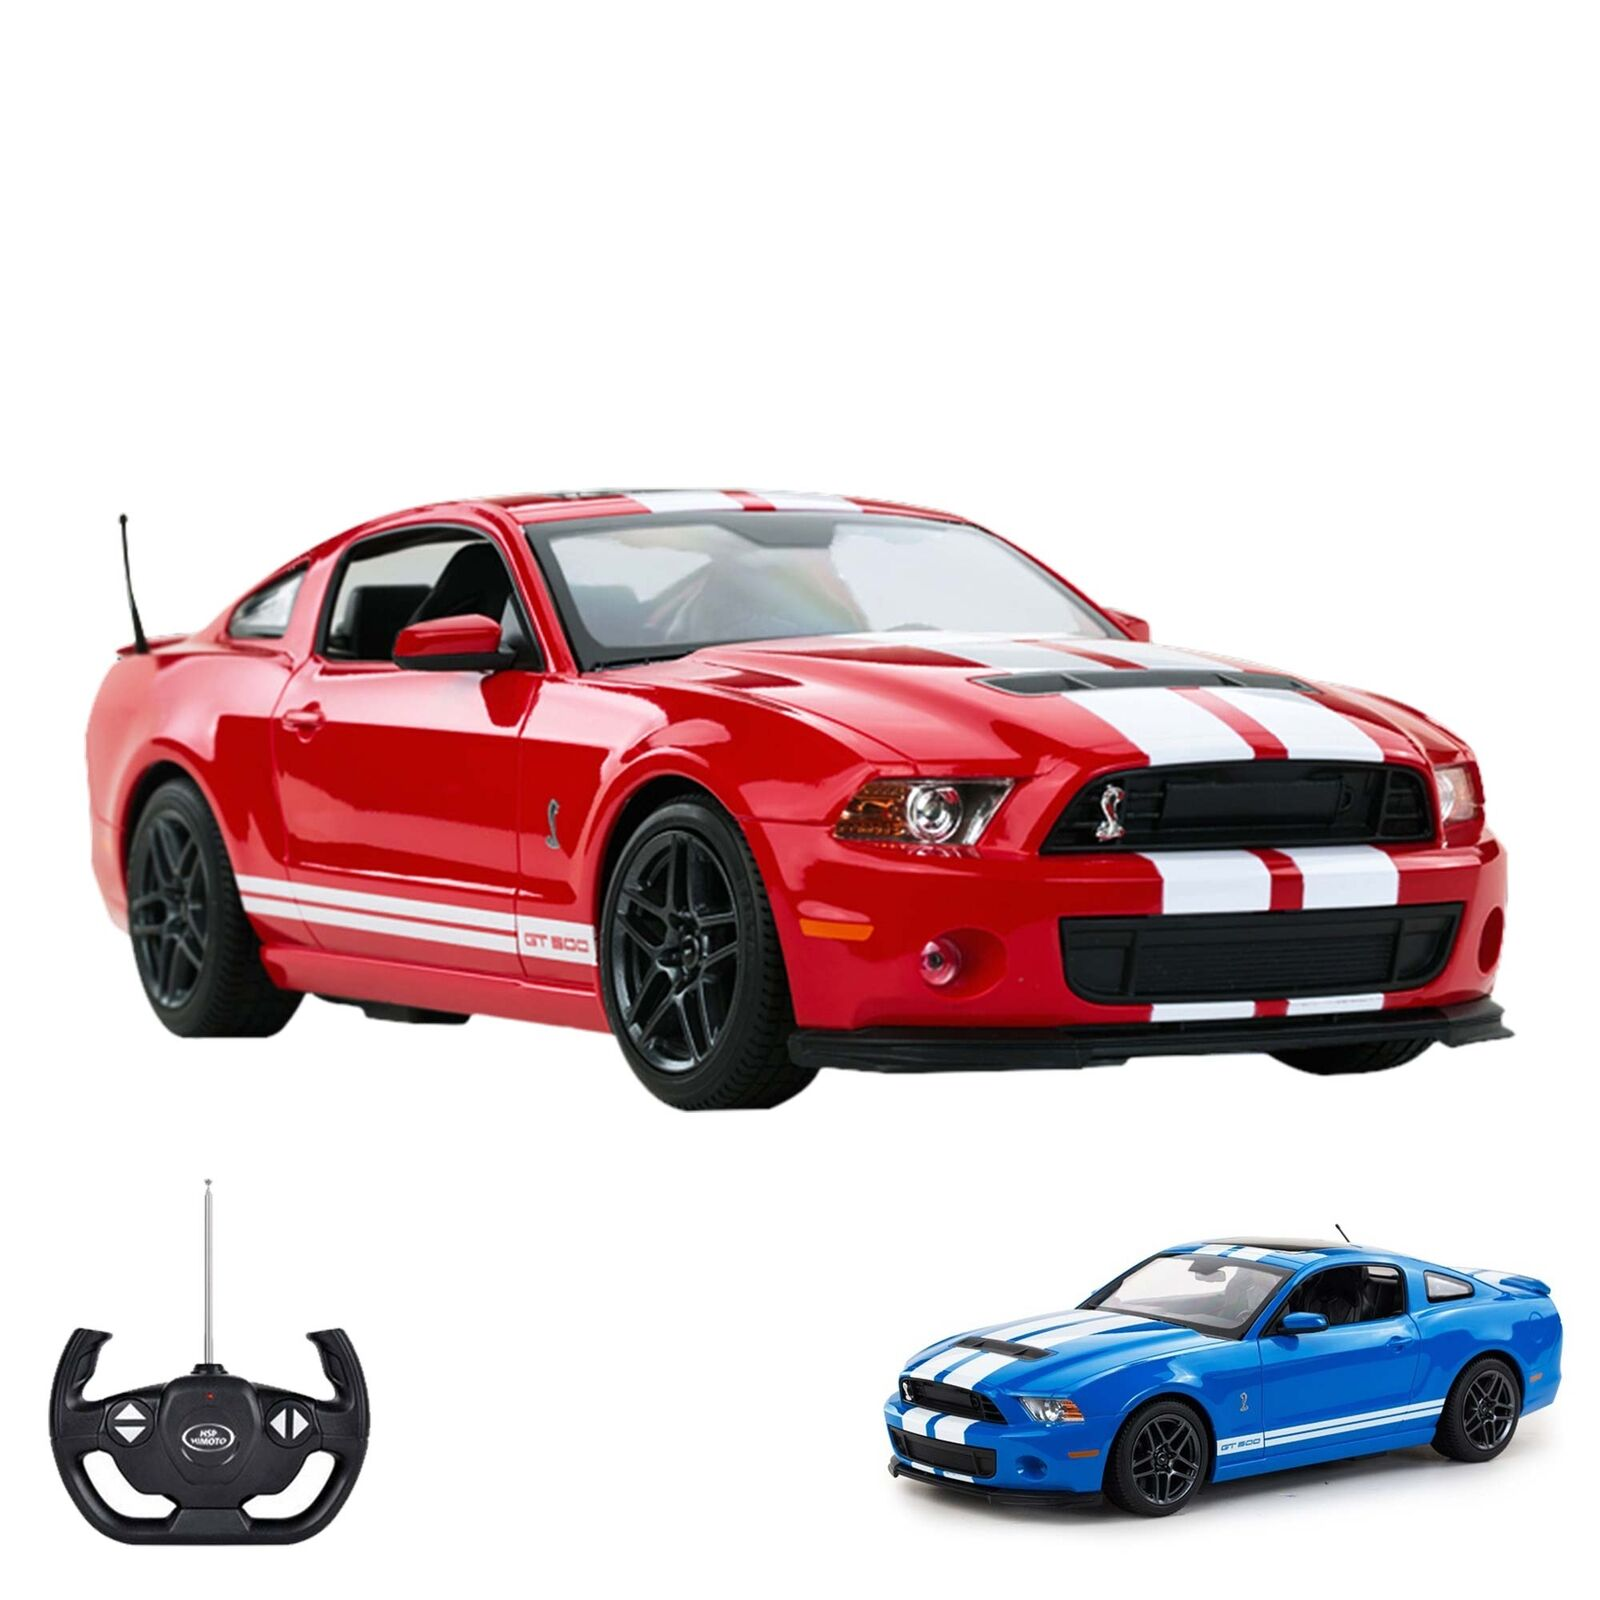 Original Ford Mustang Shelby GT500 RC ferngesteuertes Auto im 1 14 Massstab